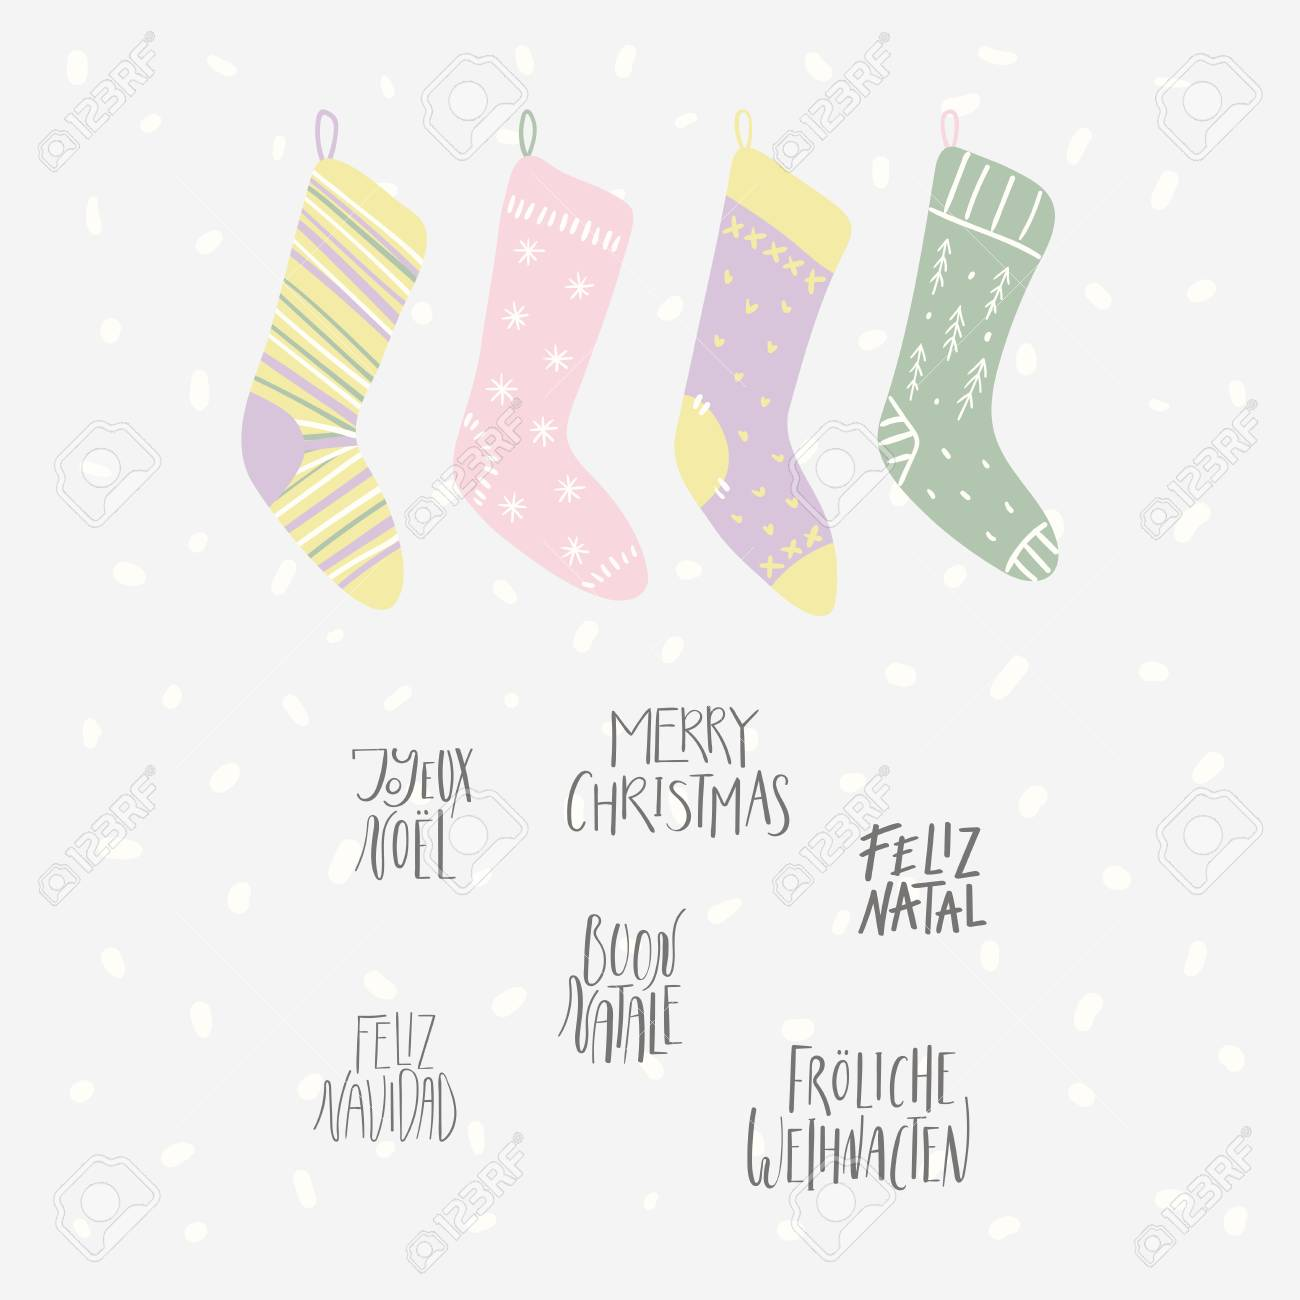 Hand drawn vector illustration of cute Christmas stockings, with..